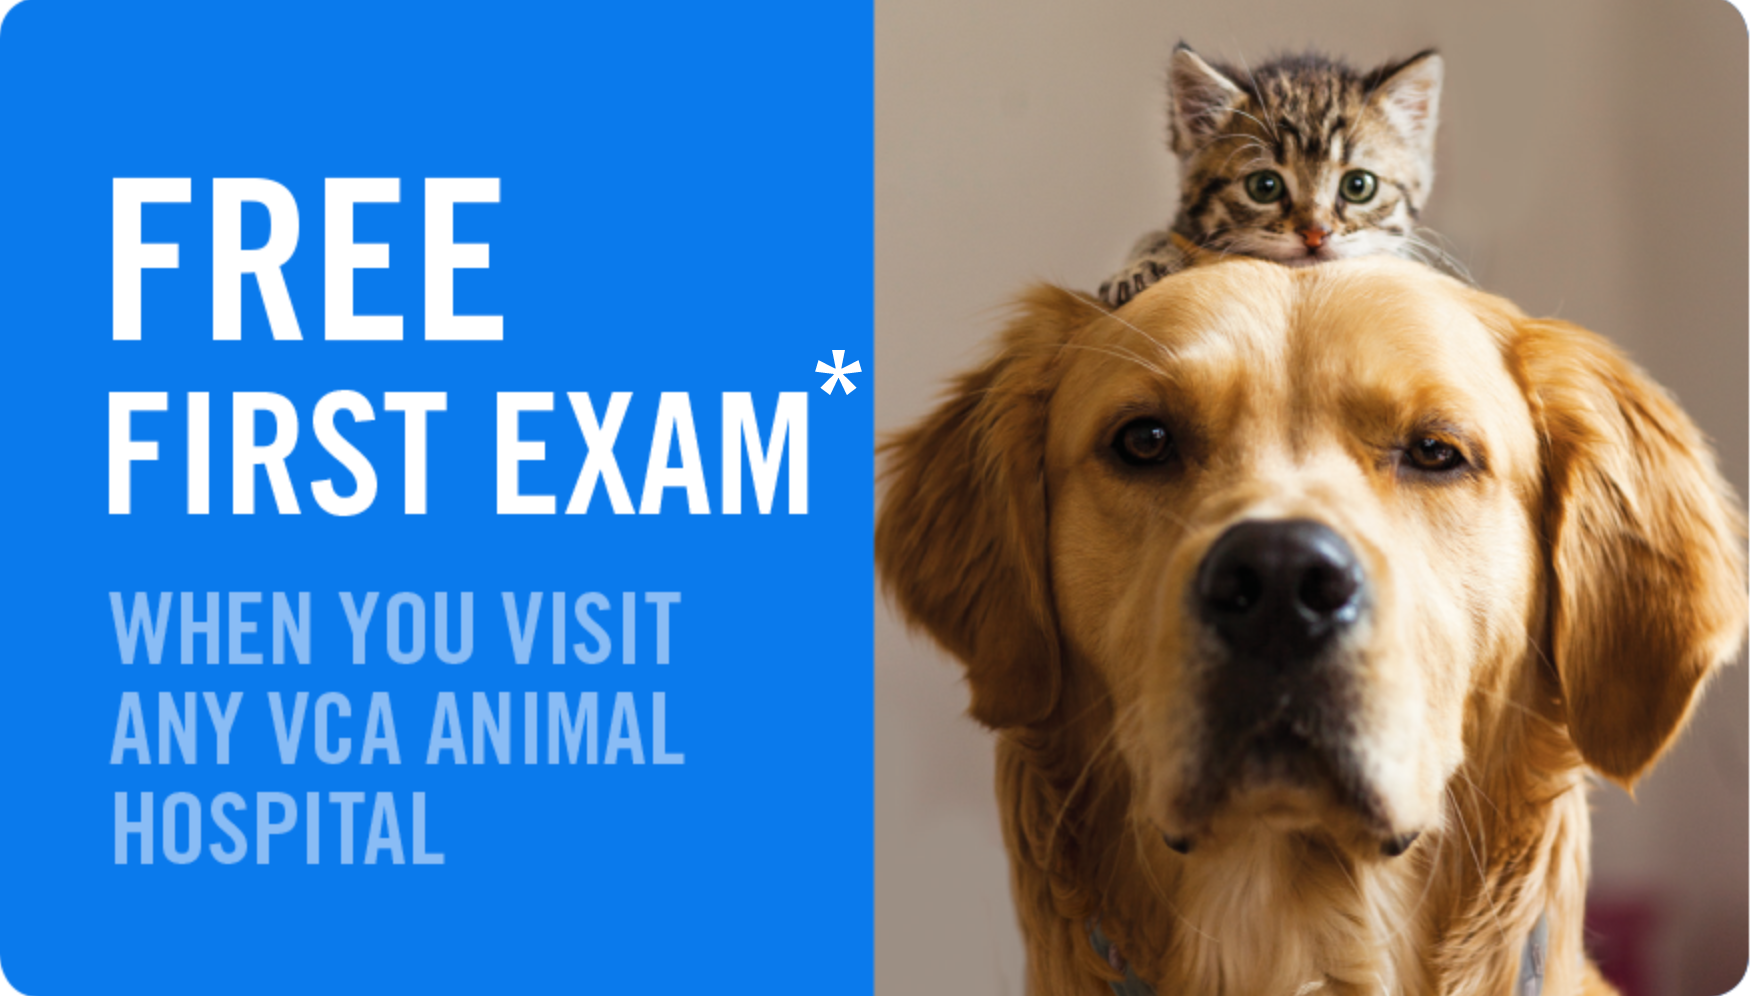 Ffe Coupon Veterinary Services Animal Hospital Veterinary Clinic